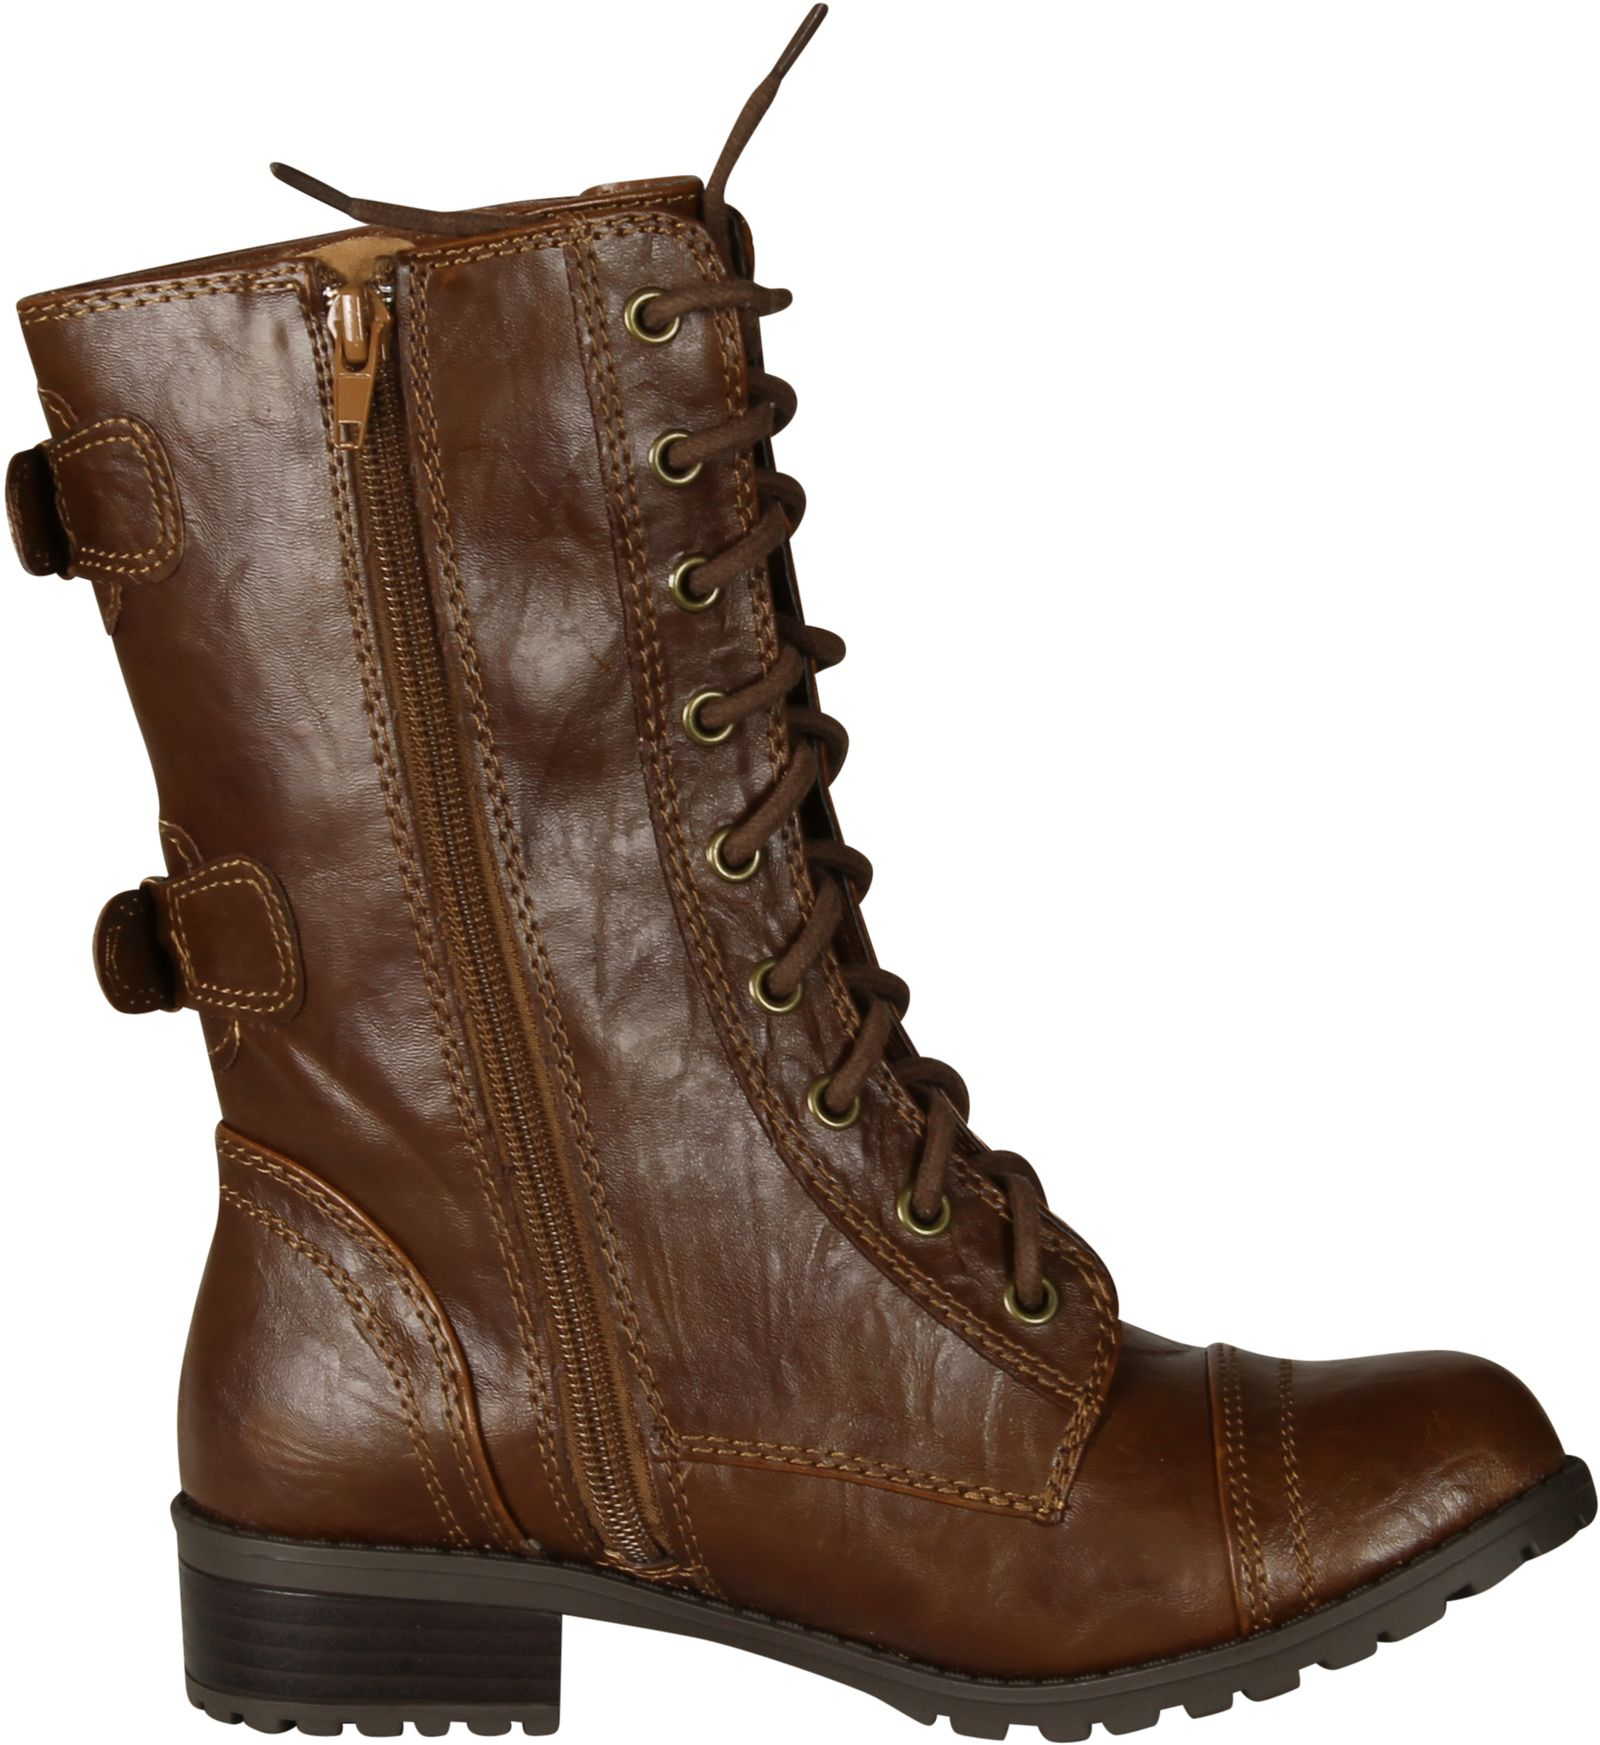 Soda Dome Mid Calf Height Women's Military / Combat Boots | eBay